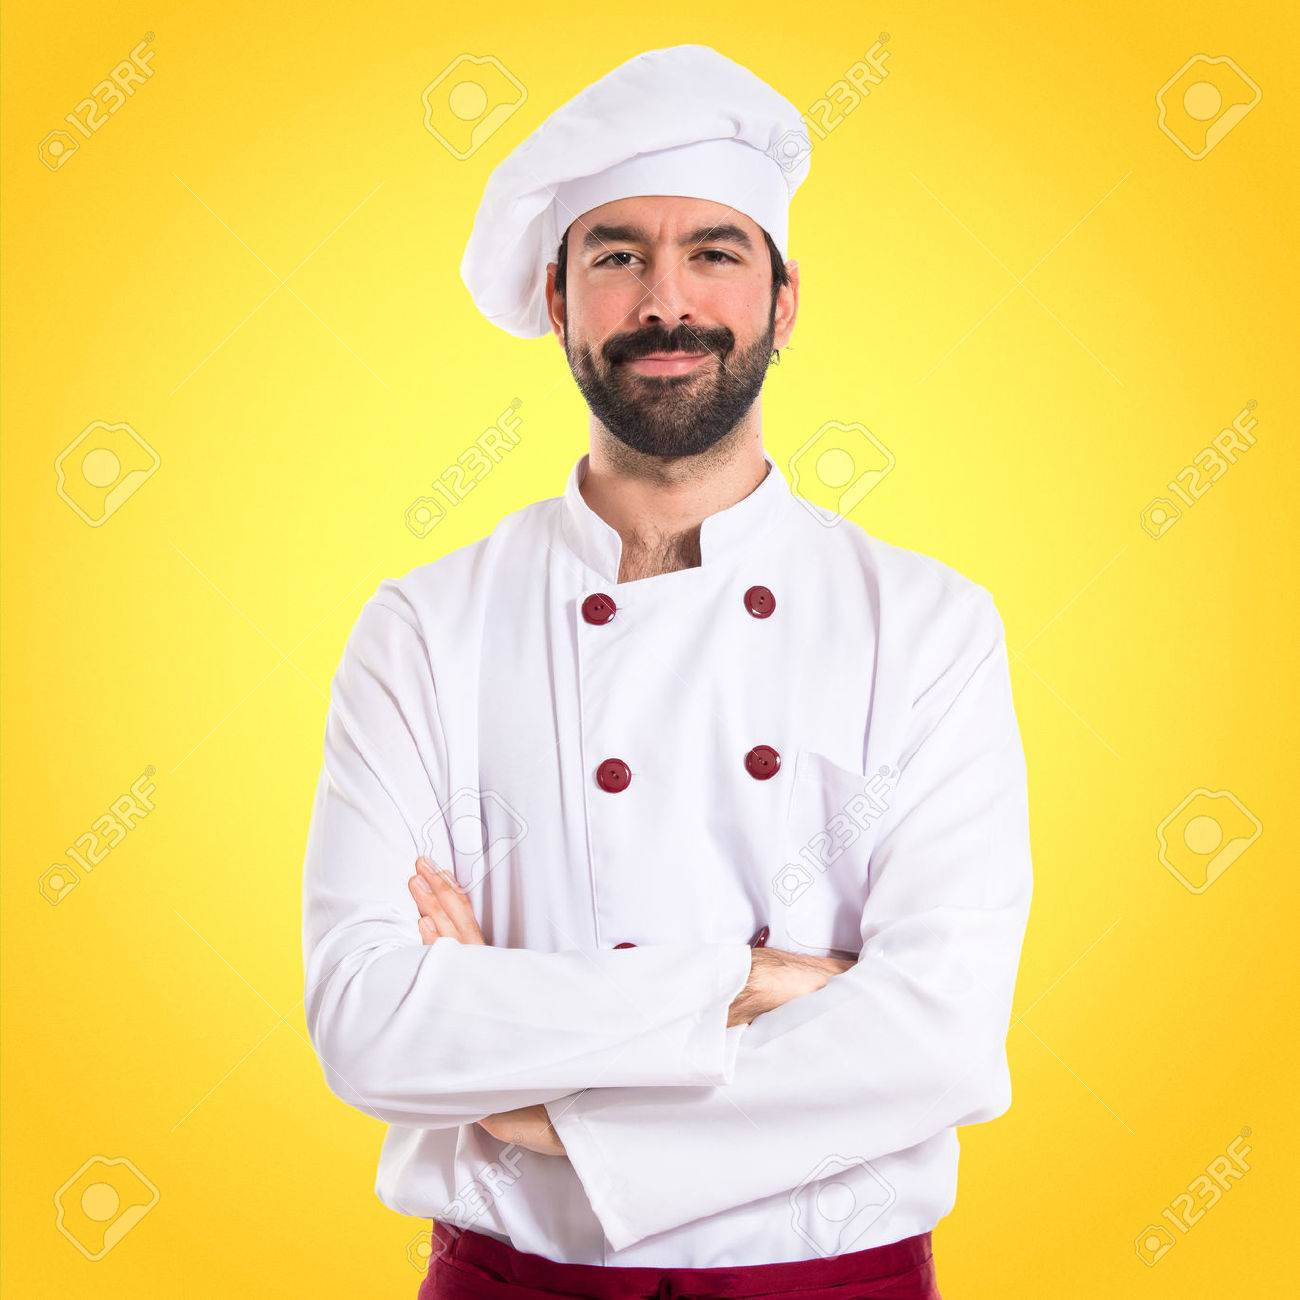 Chef with his arms crossed over white background Stock Photo - 40989323